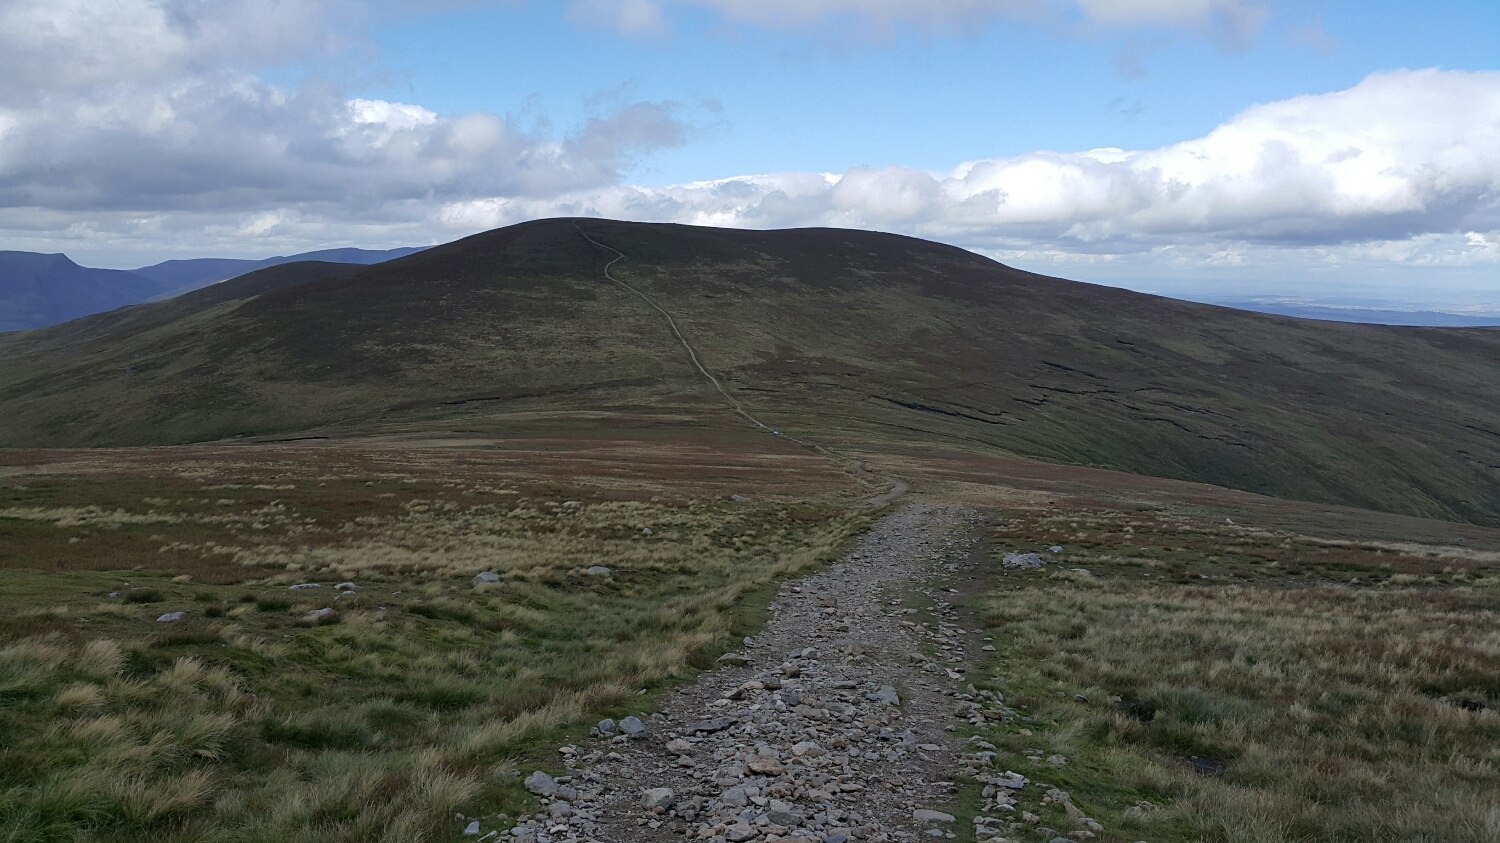 The last Dodd in the distance before the mountain behind.